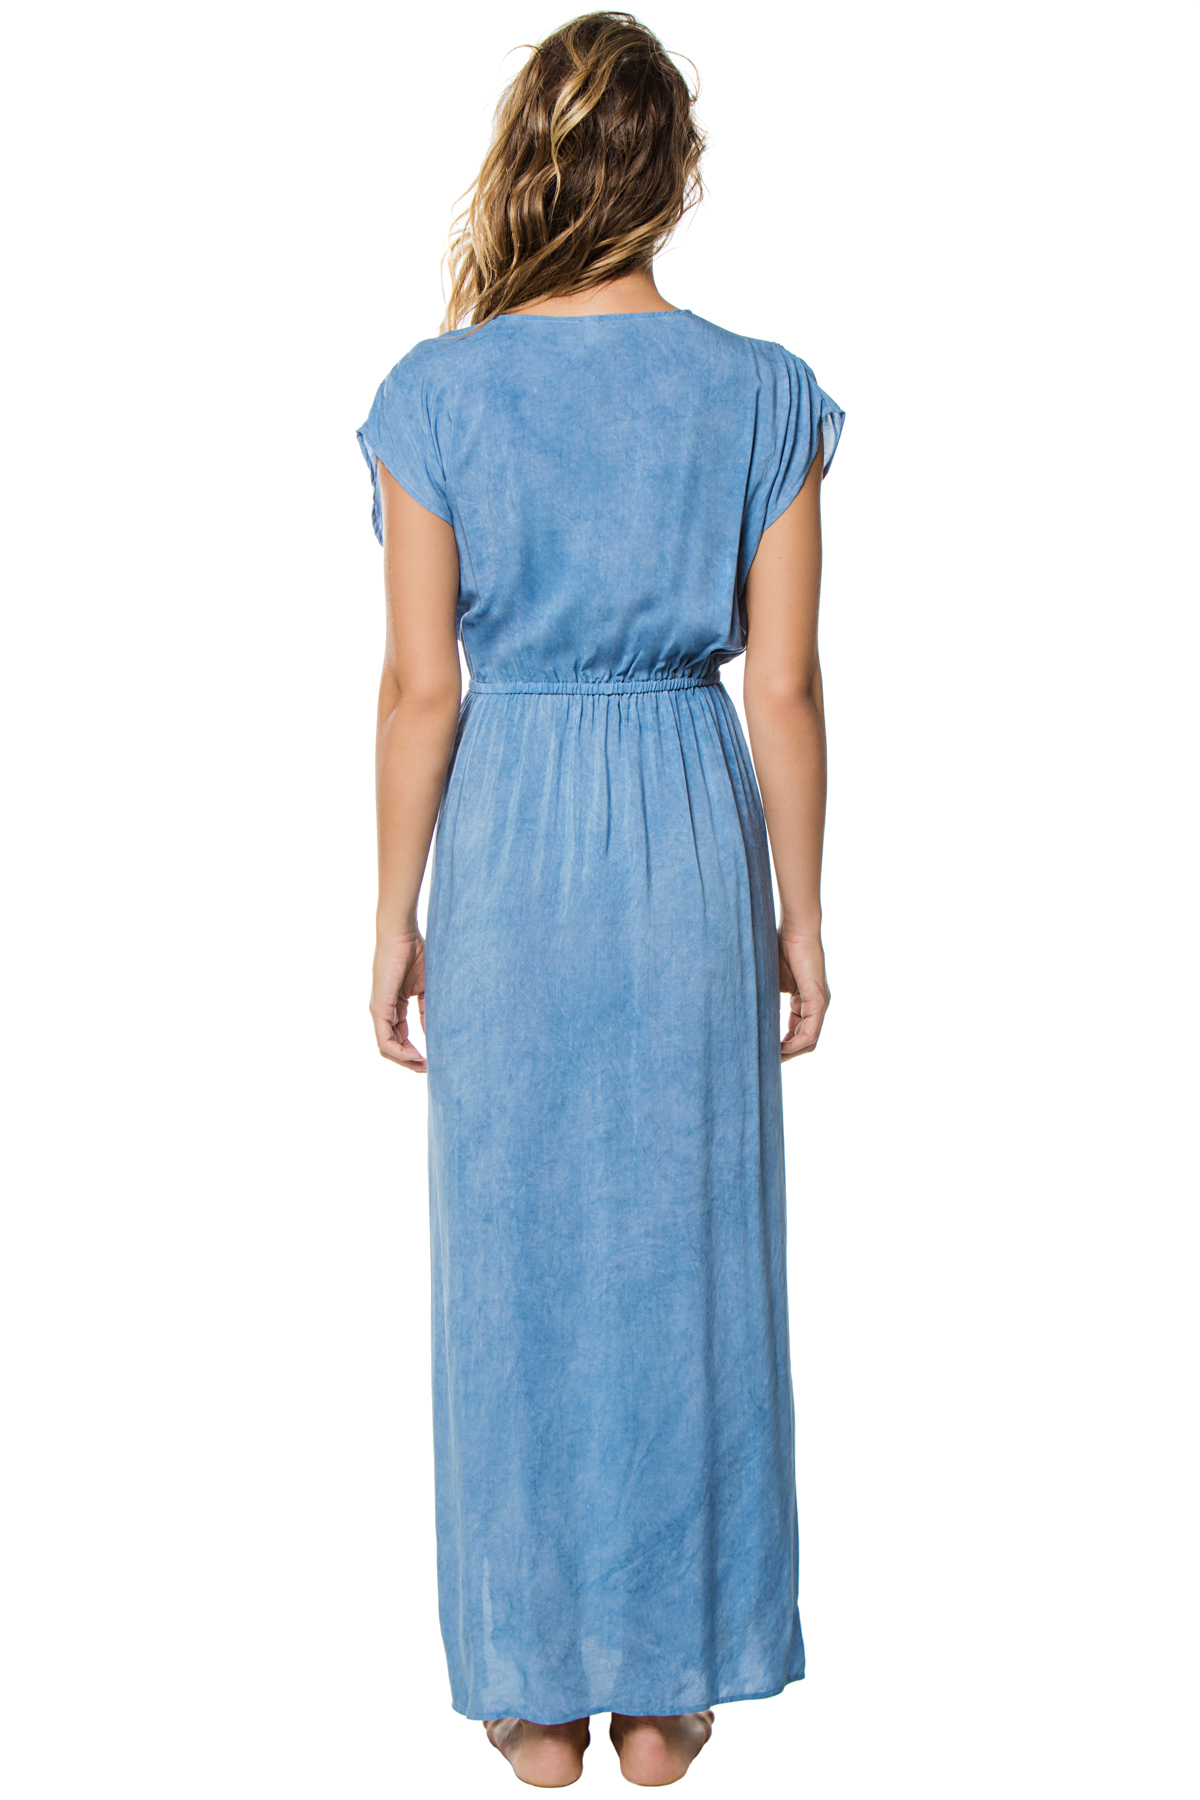 Deep V-Neck Caftan - Washed Blue 2